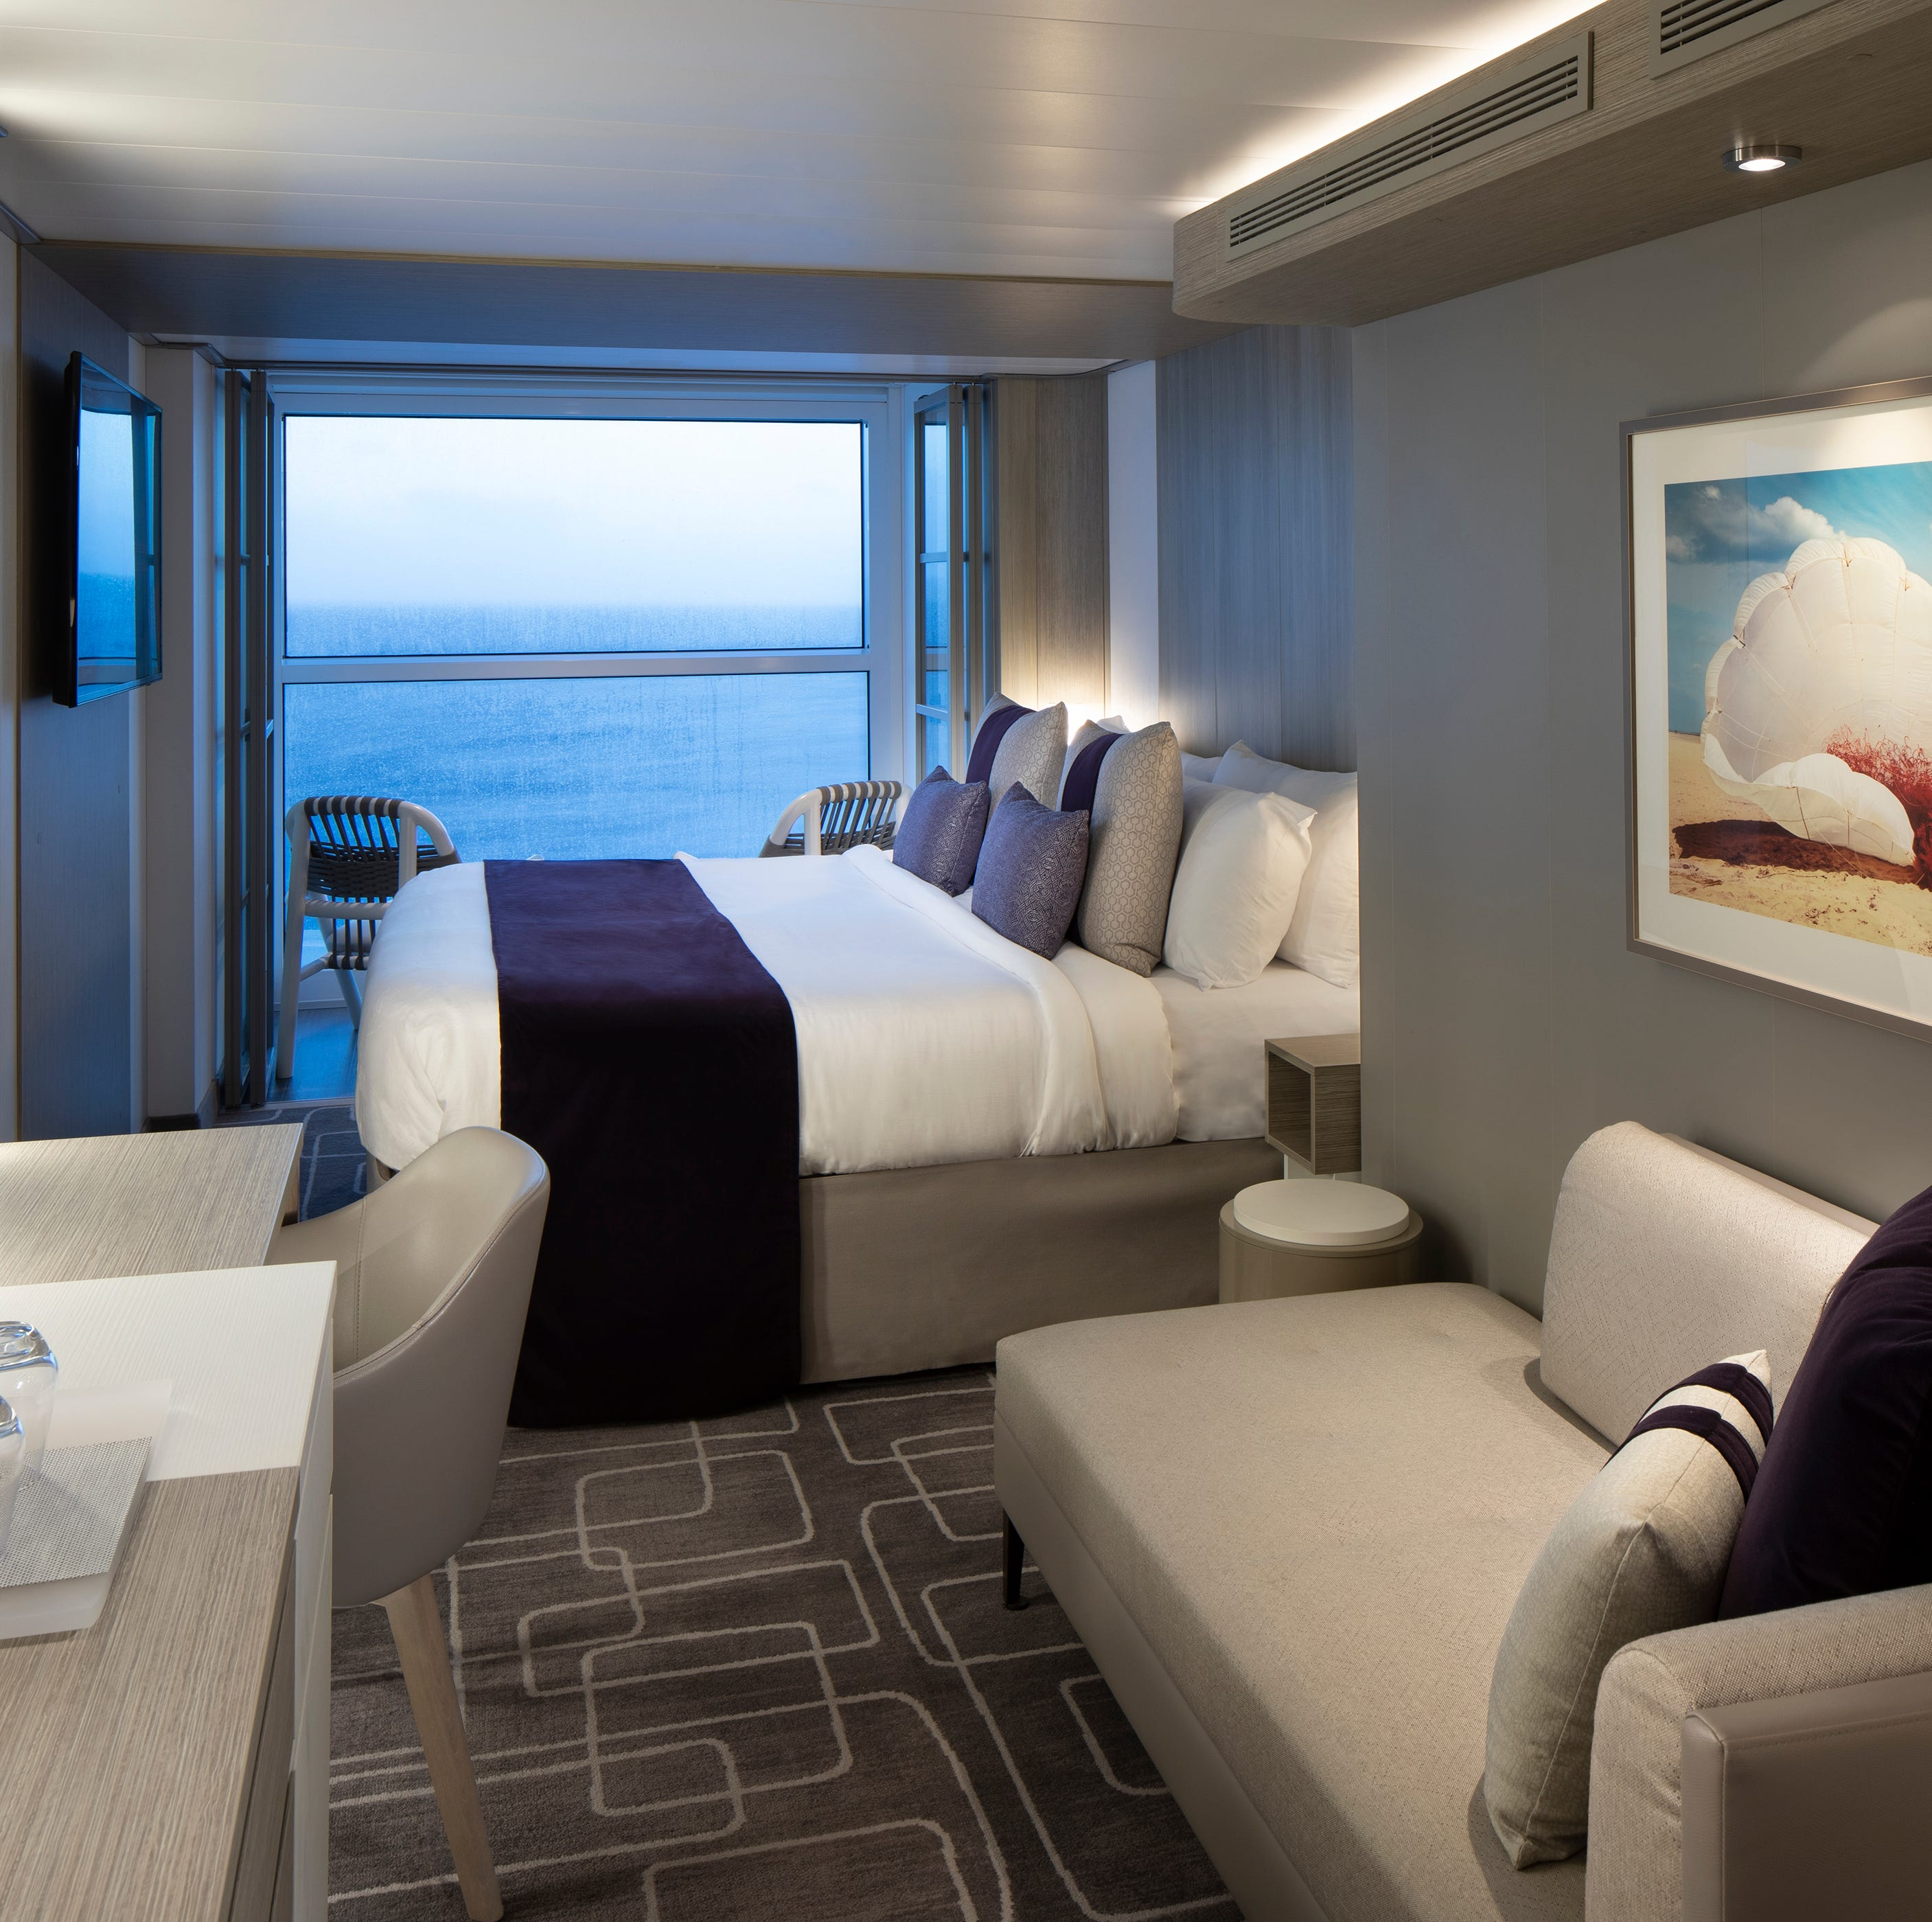 The Edge Stateroom with Infinite Veranda cabins on Celebrity Edge feature wall-to-wall, floor-to-ceiling glass that opens from the top down to create a balcony effect.